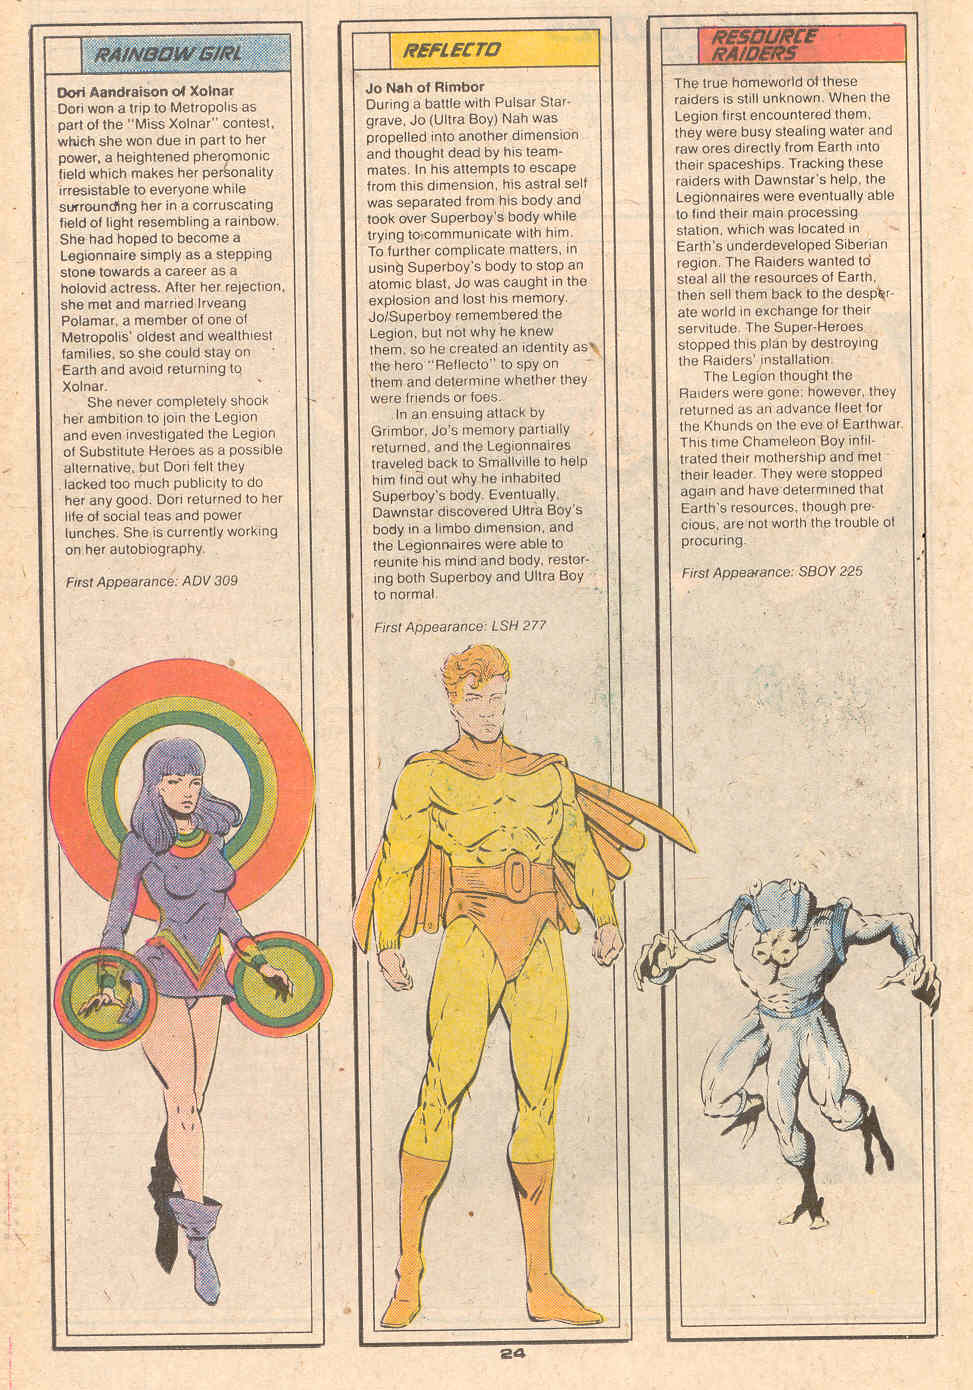 Rainbow Girl, Reflecto, and Resource Raiders by Rob Liefeld and Al Gordon - Who's Who in the Legion of Super-Heroes #5